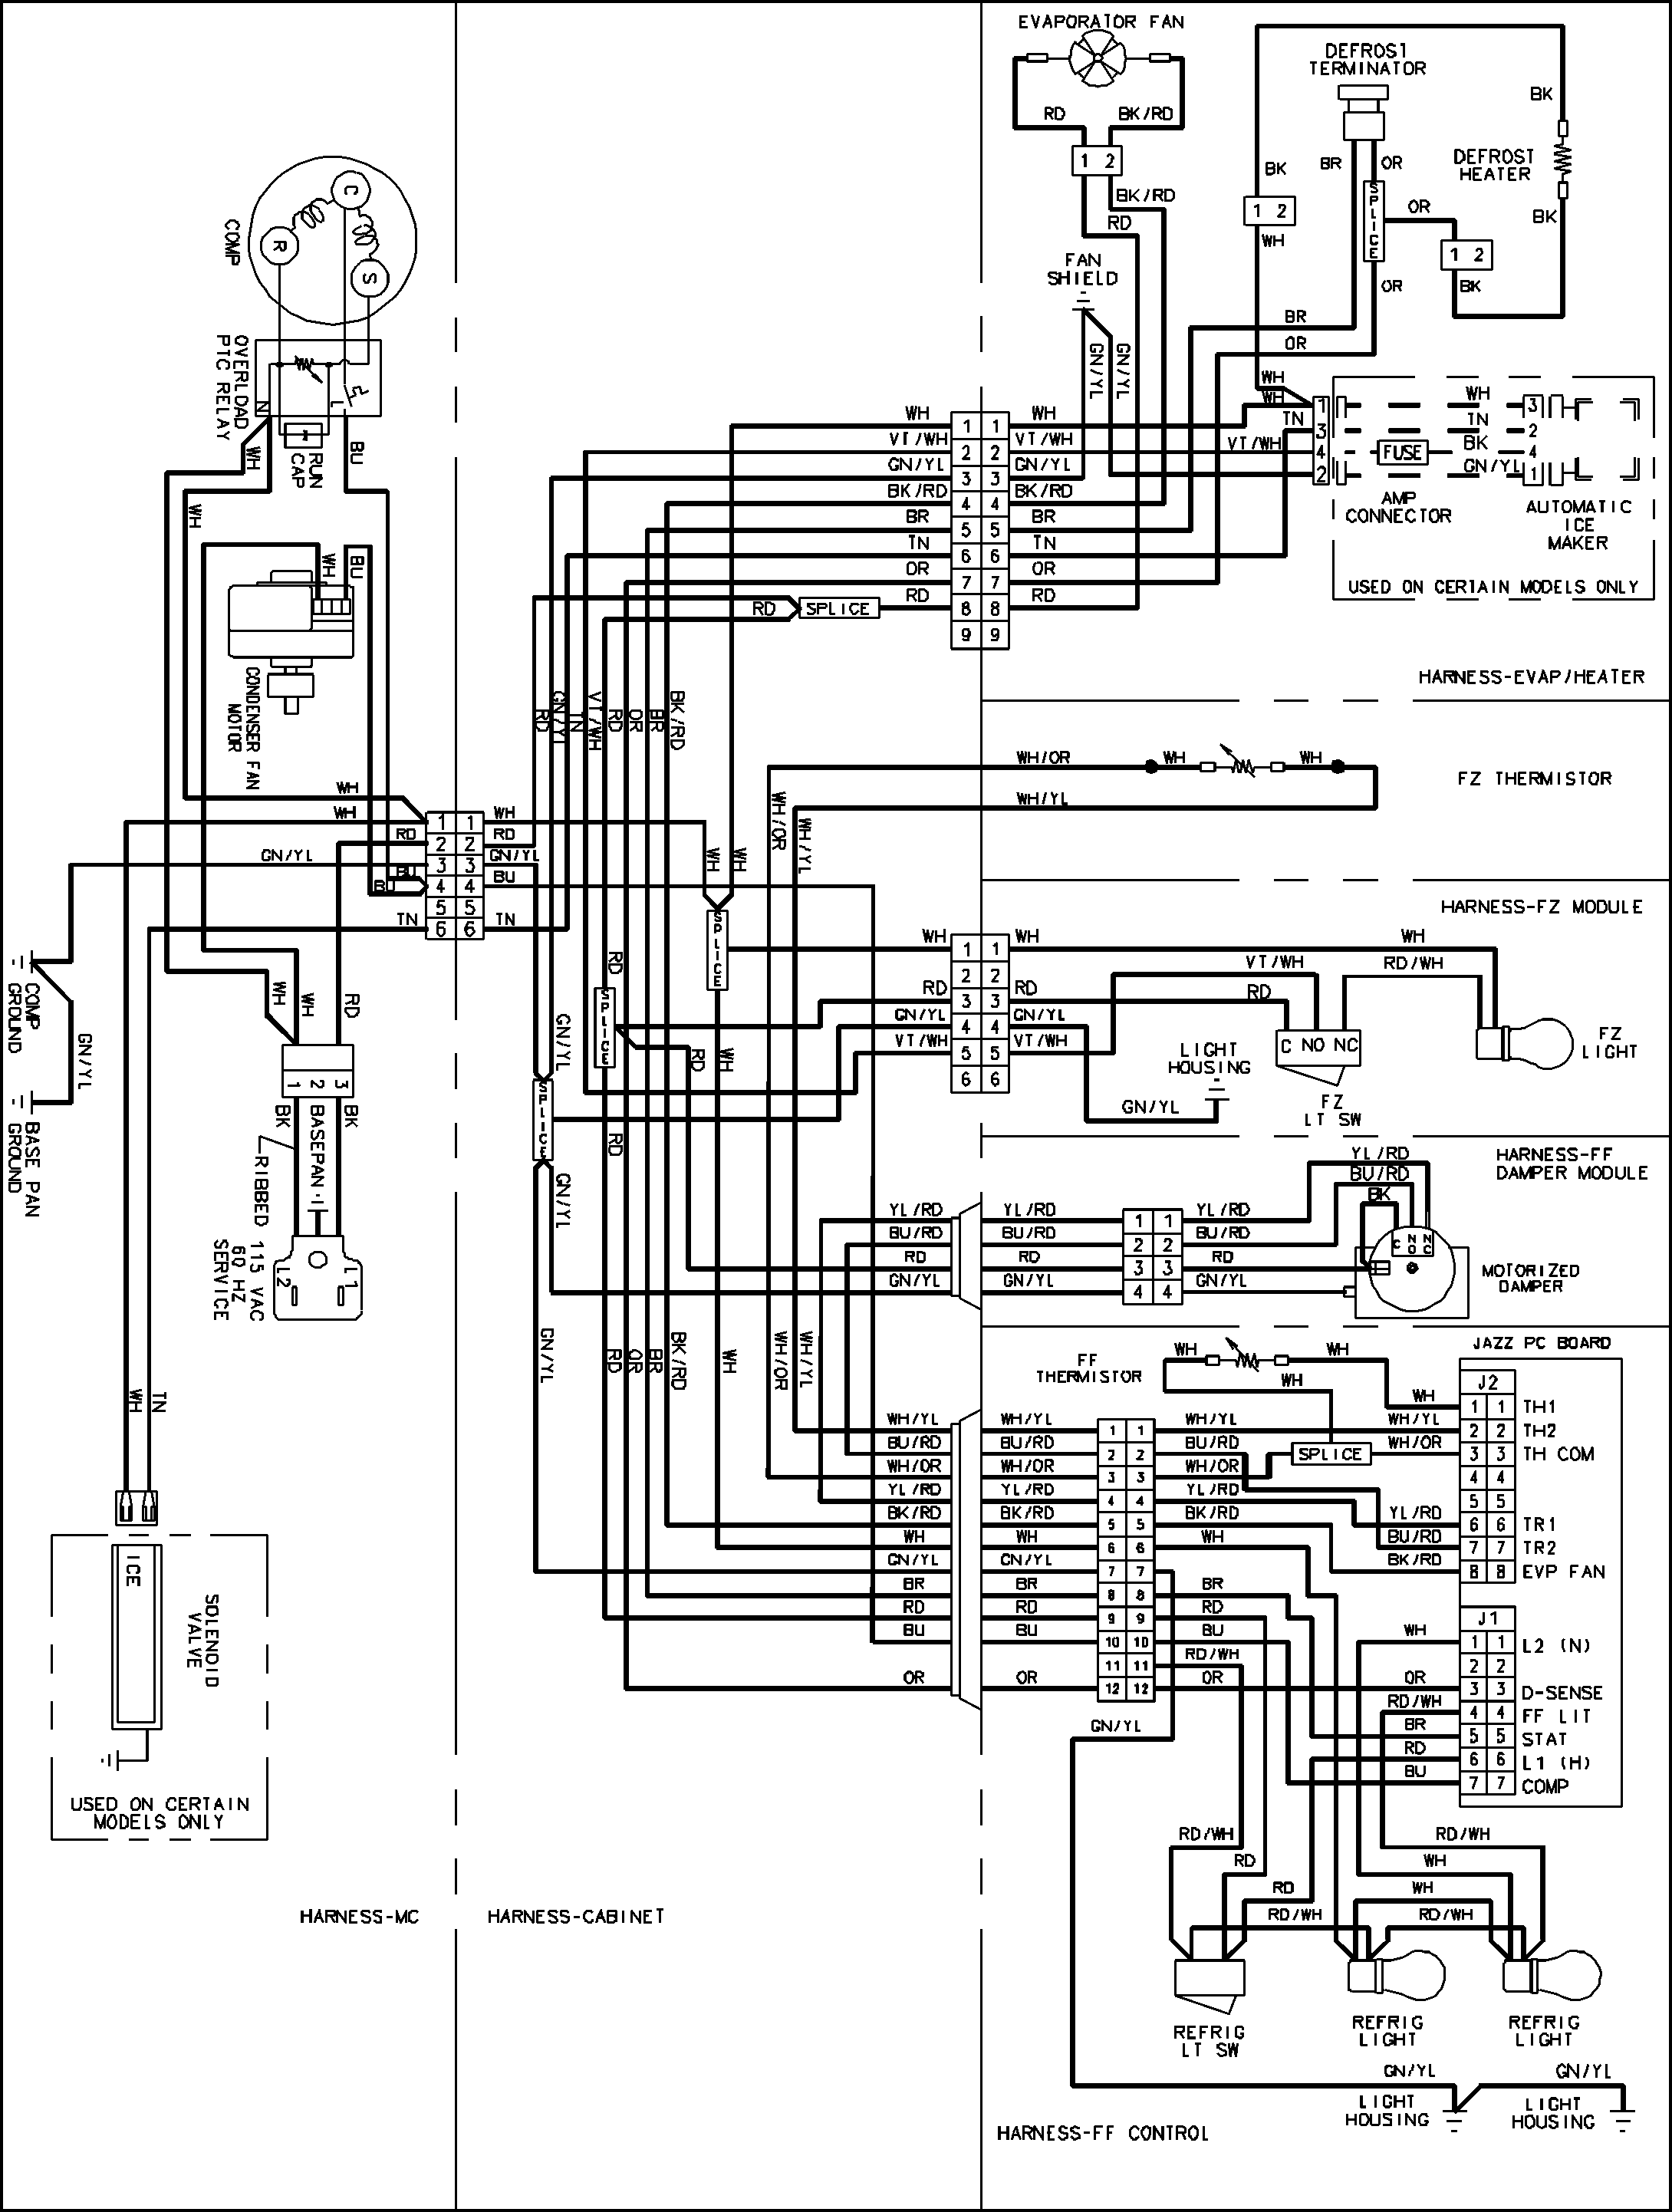 mde7400ayw wiring diagram   25 wiring diagram images